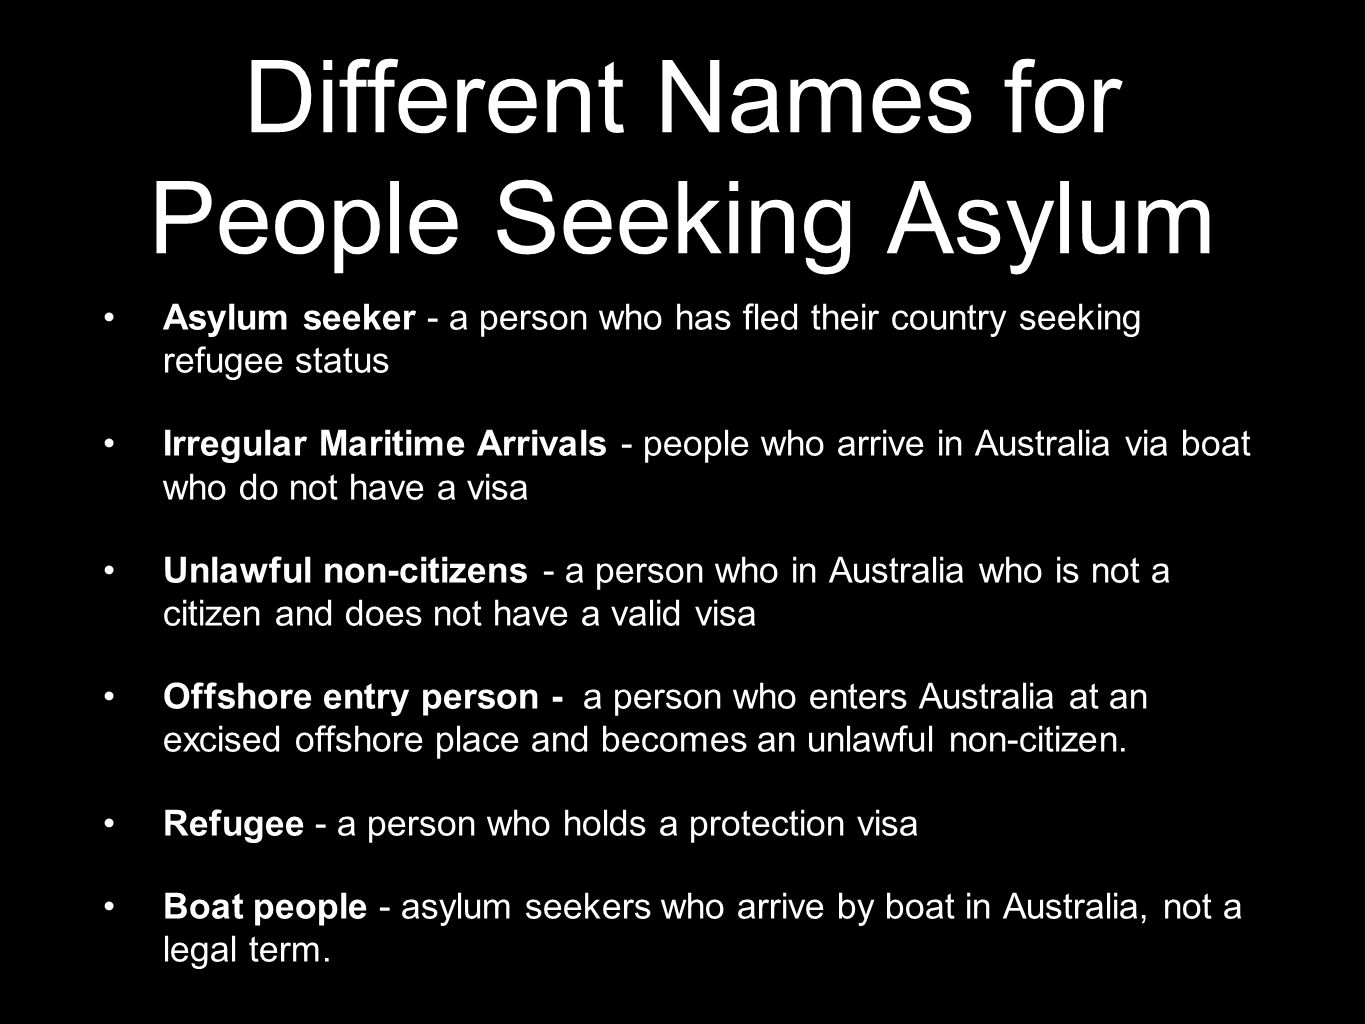 Different Names for People Seeking Asylum